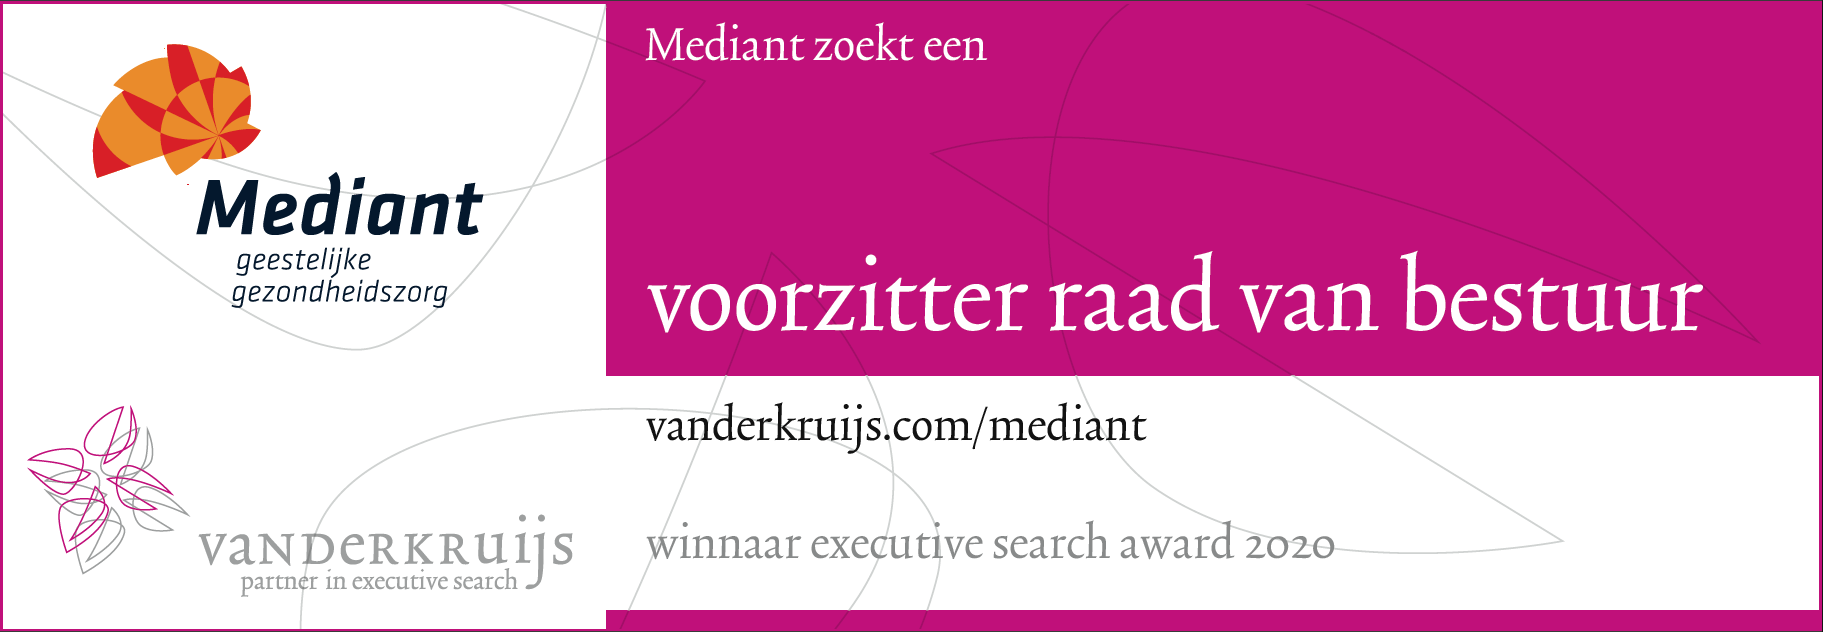 Mediant advertentie social media